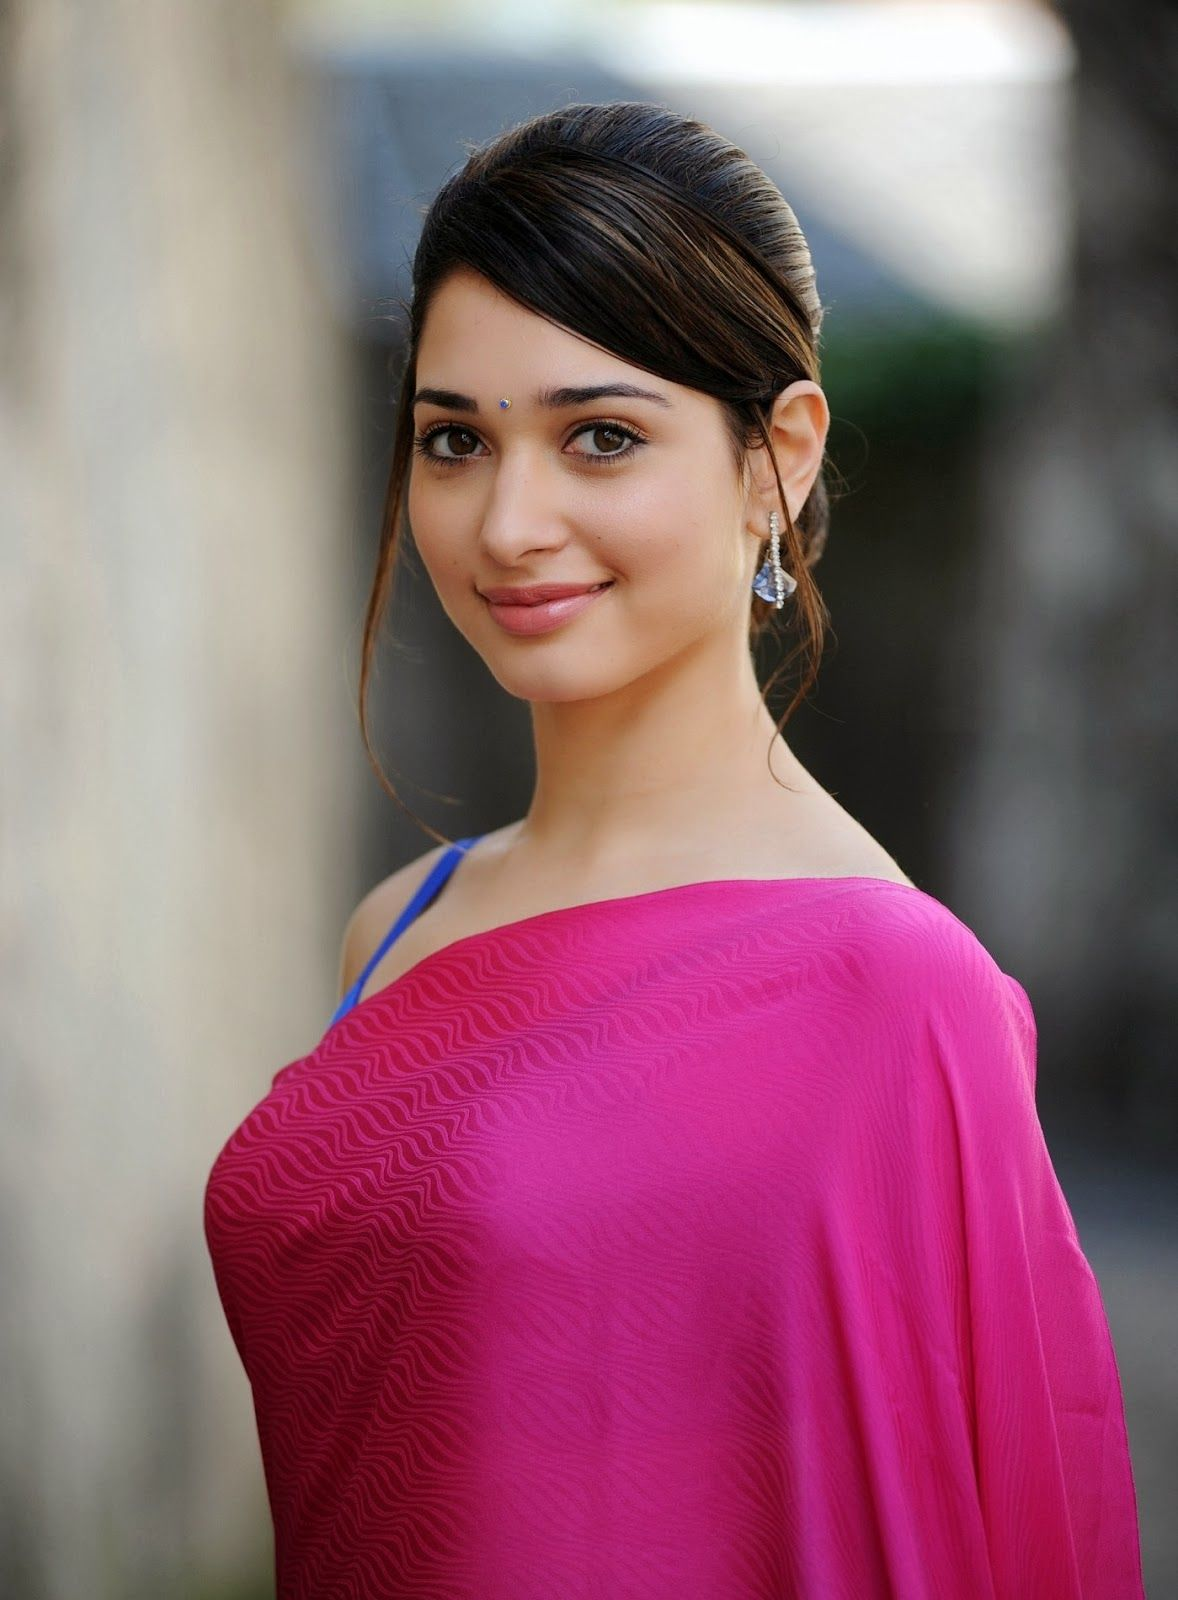 Milky White Beauty Tamanna Bhatia Looks Dropdead Gorgeous In Pink ...